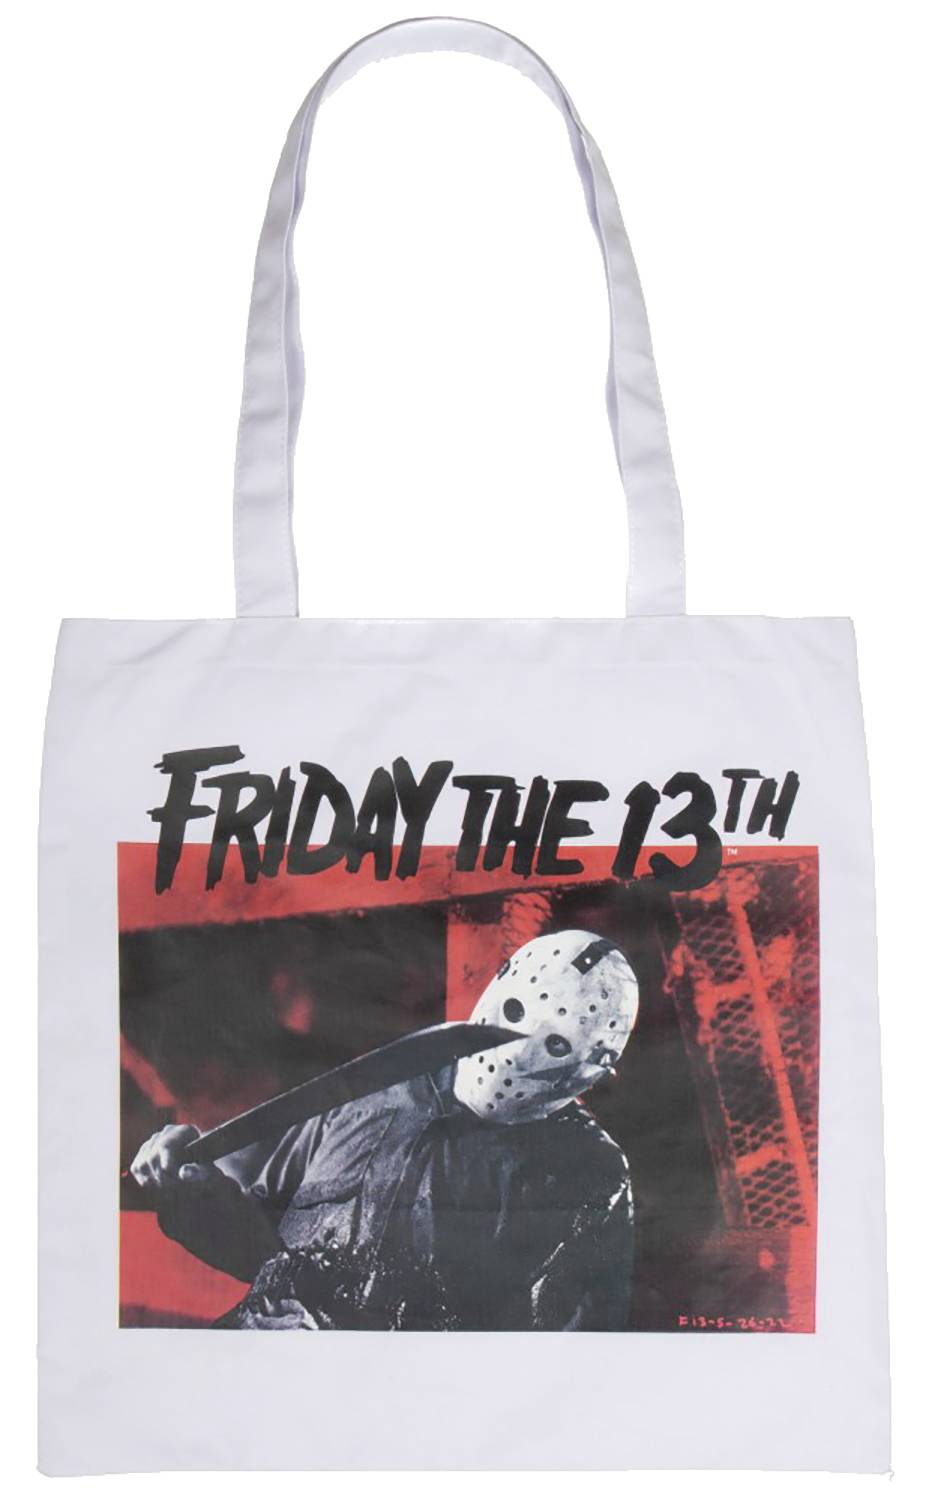 FRIDAY THE 13TH IMAGE CAPTURE CANVAS TOTE